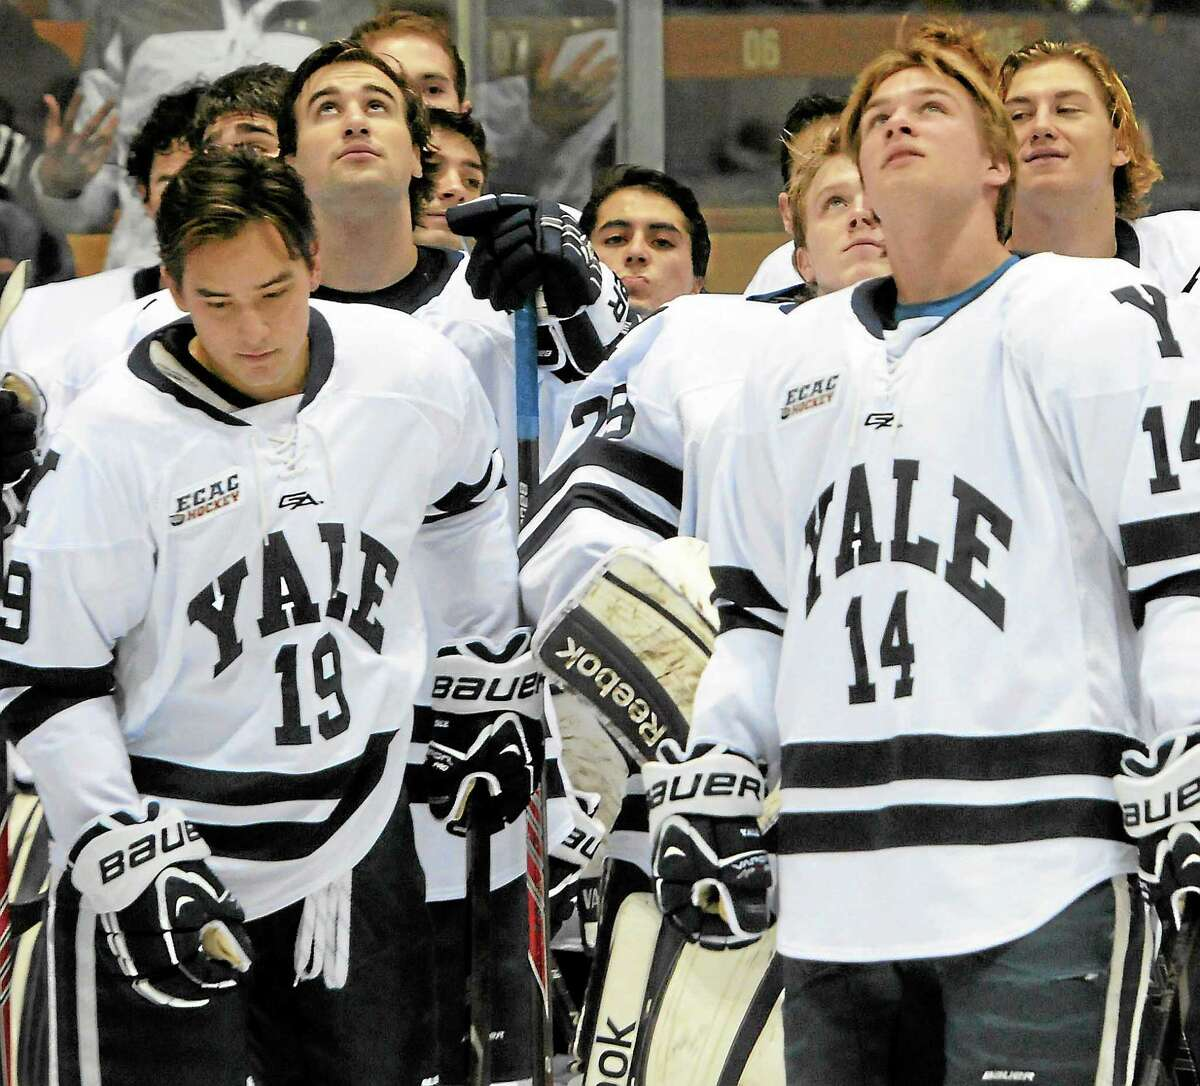 Yale players look up as the 2013 NCAA men's hockey national championship banner is raised at Yale's Ingalls Rink before Friday night's game against St. Lawrence.